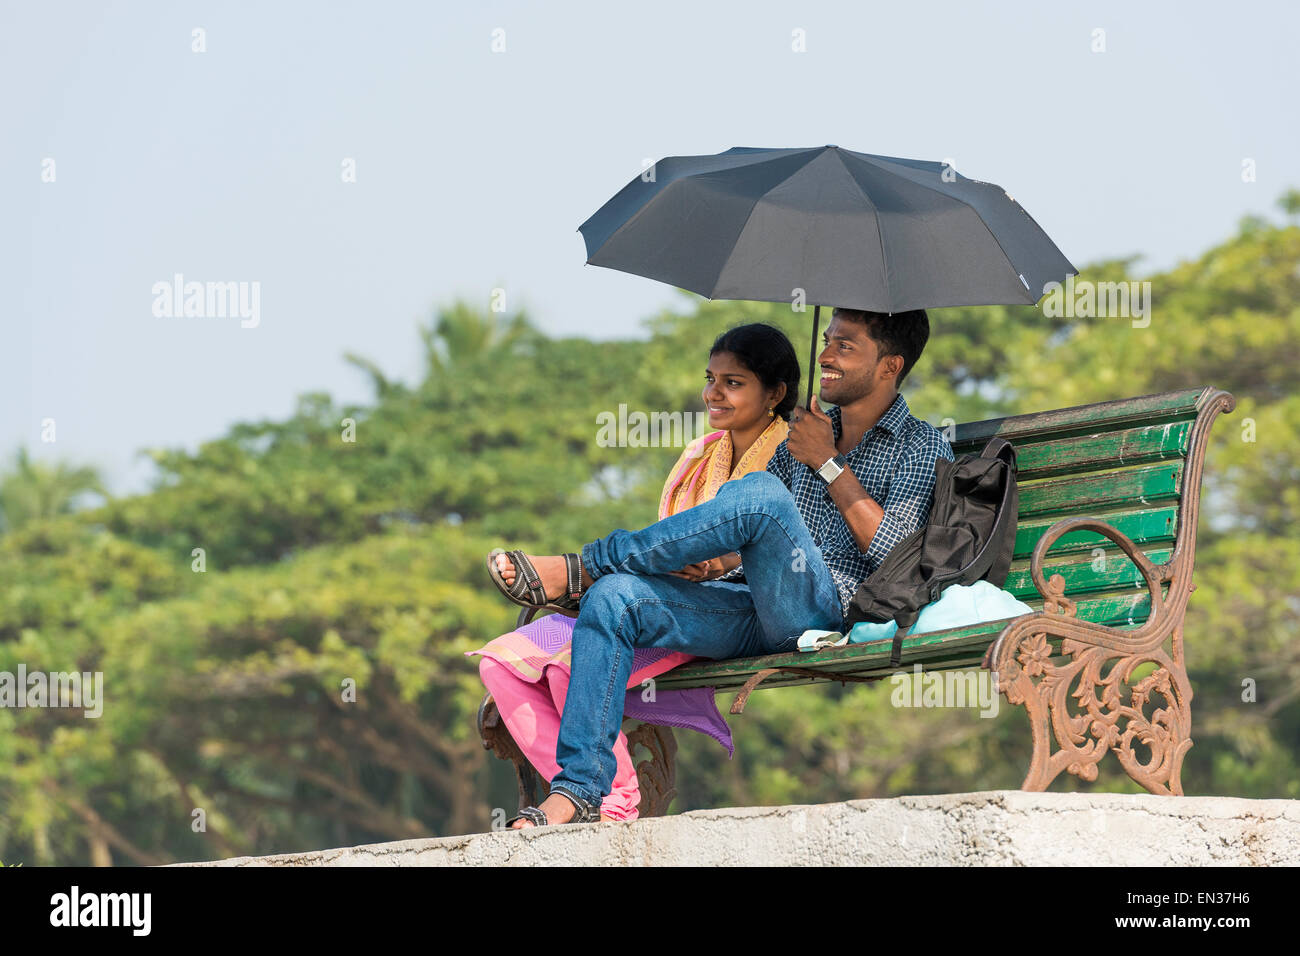 Young couple with a parasol sitting on a park bench, Fort Kochi, Kerala, India - Stock Image